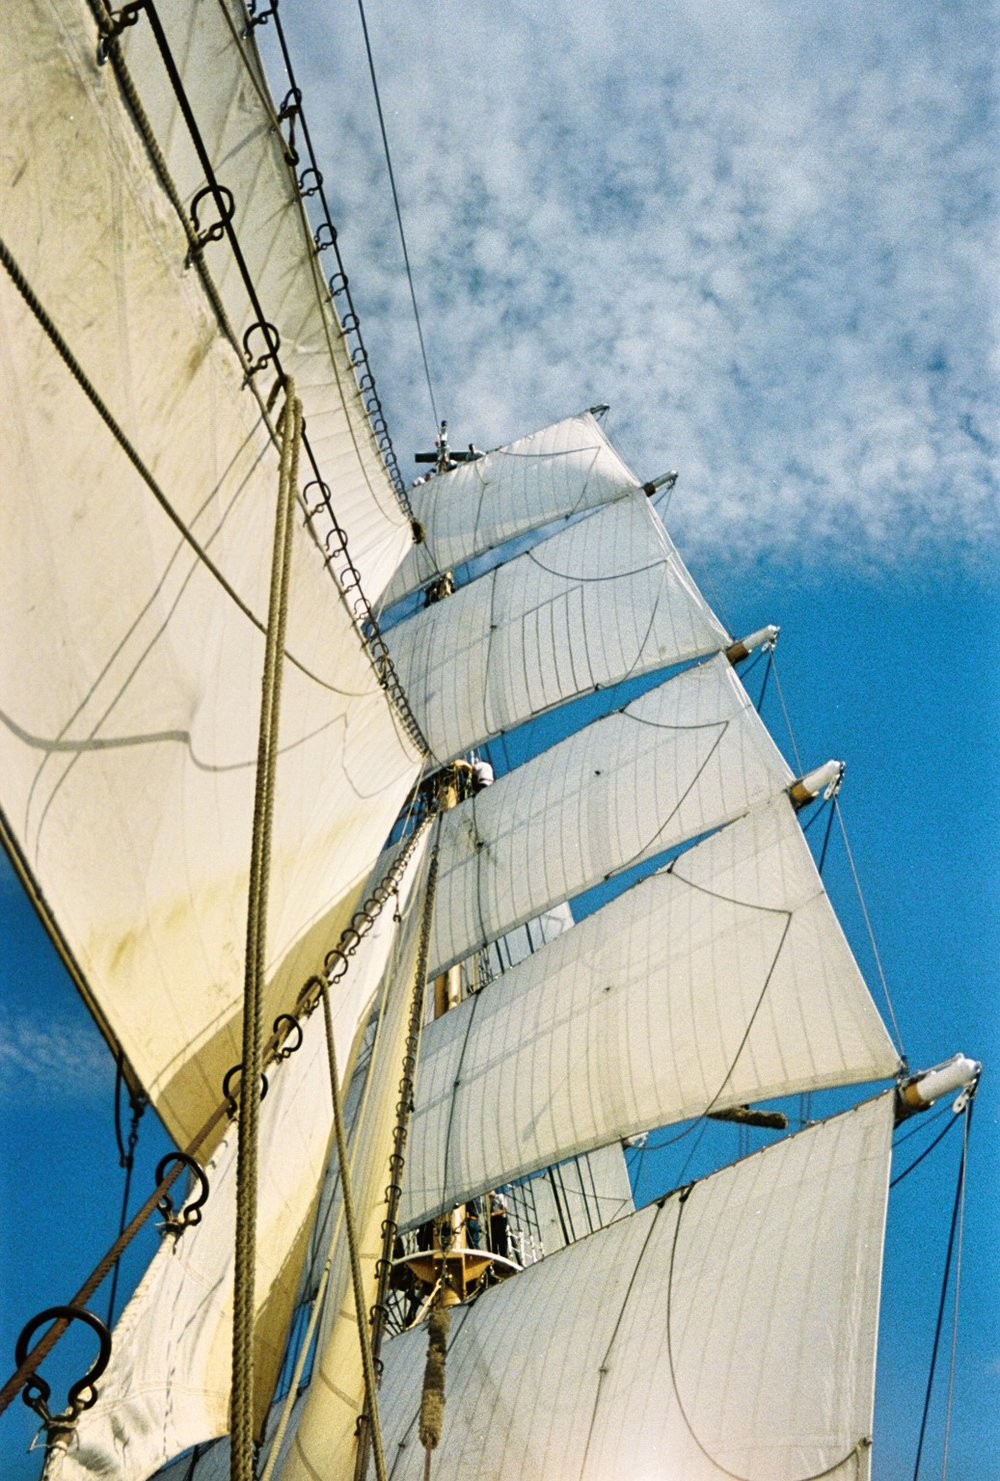 The Barque Eagle's sails. Photo by Tenley Lozano